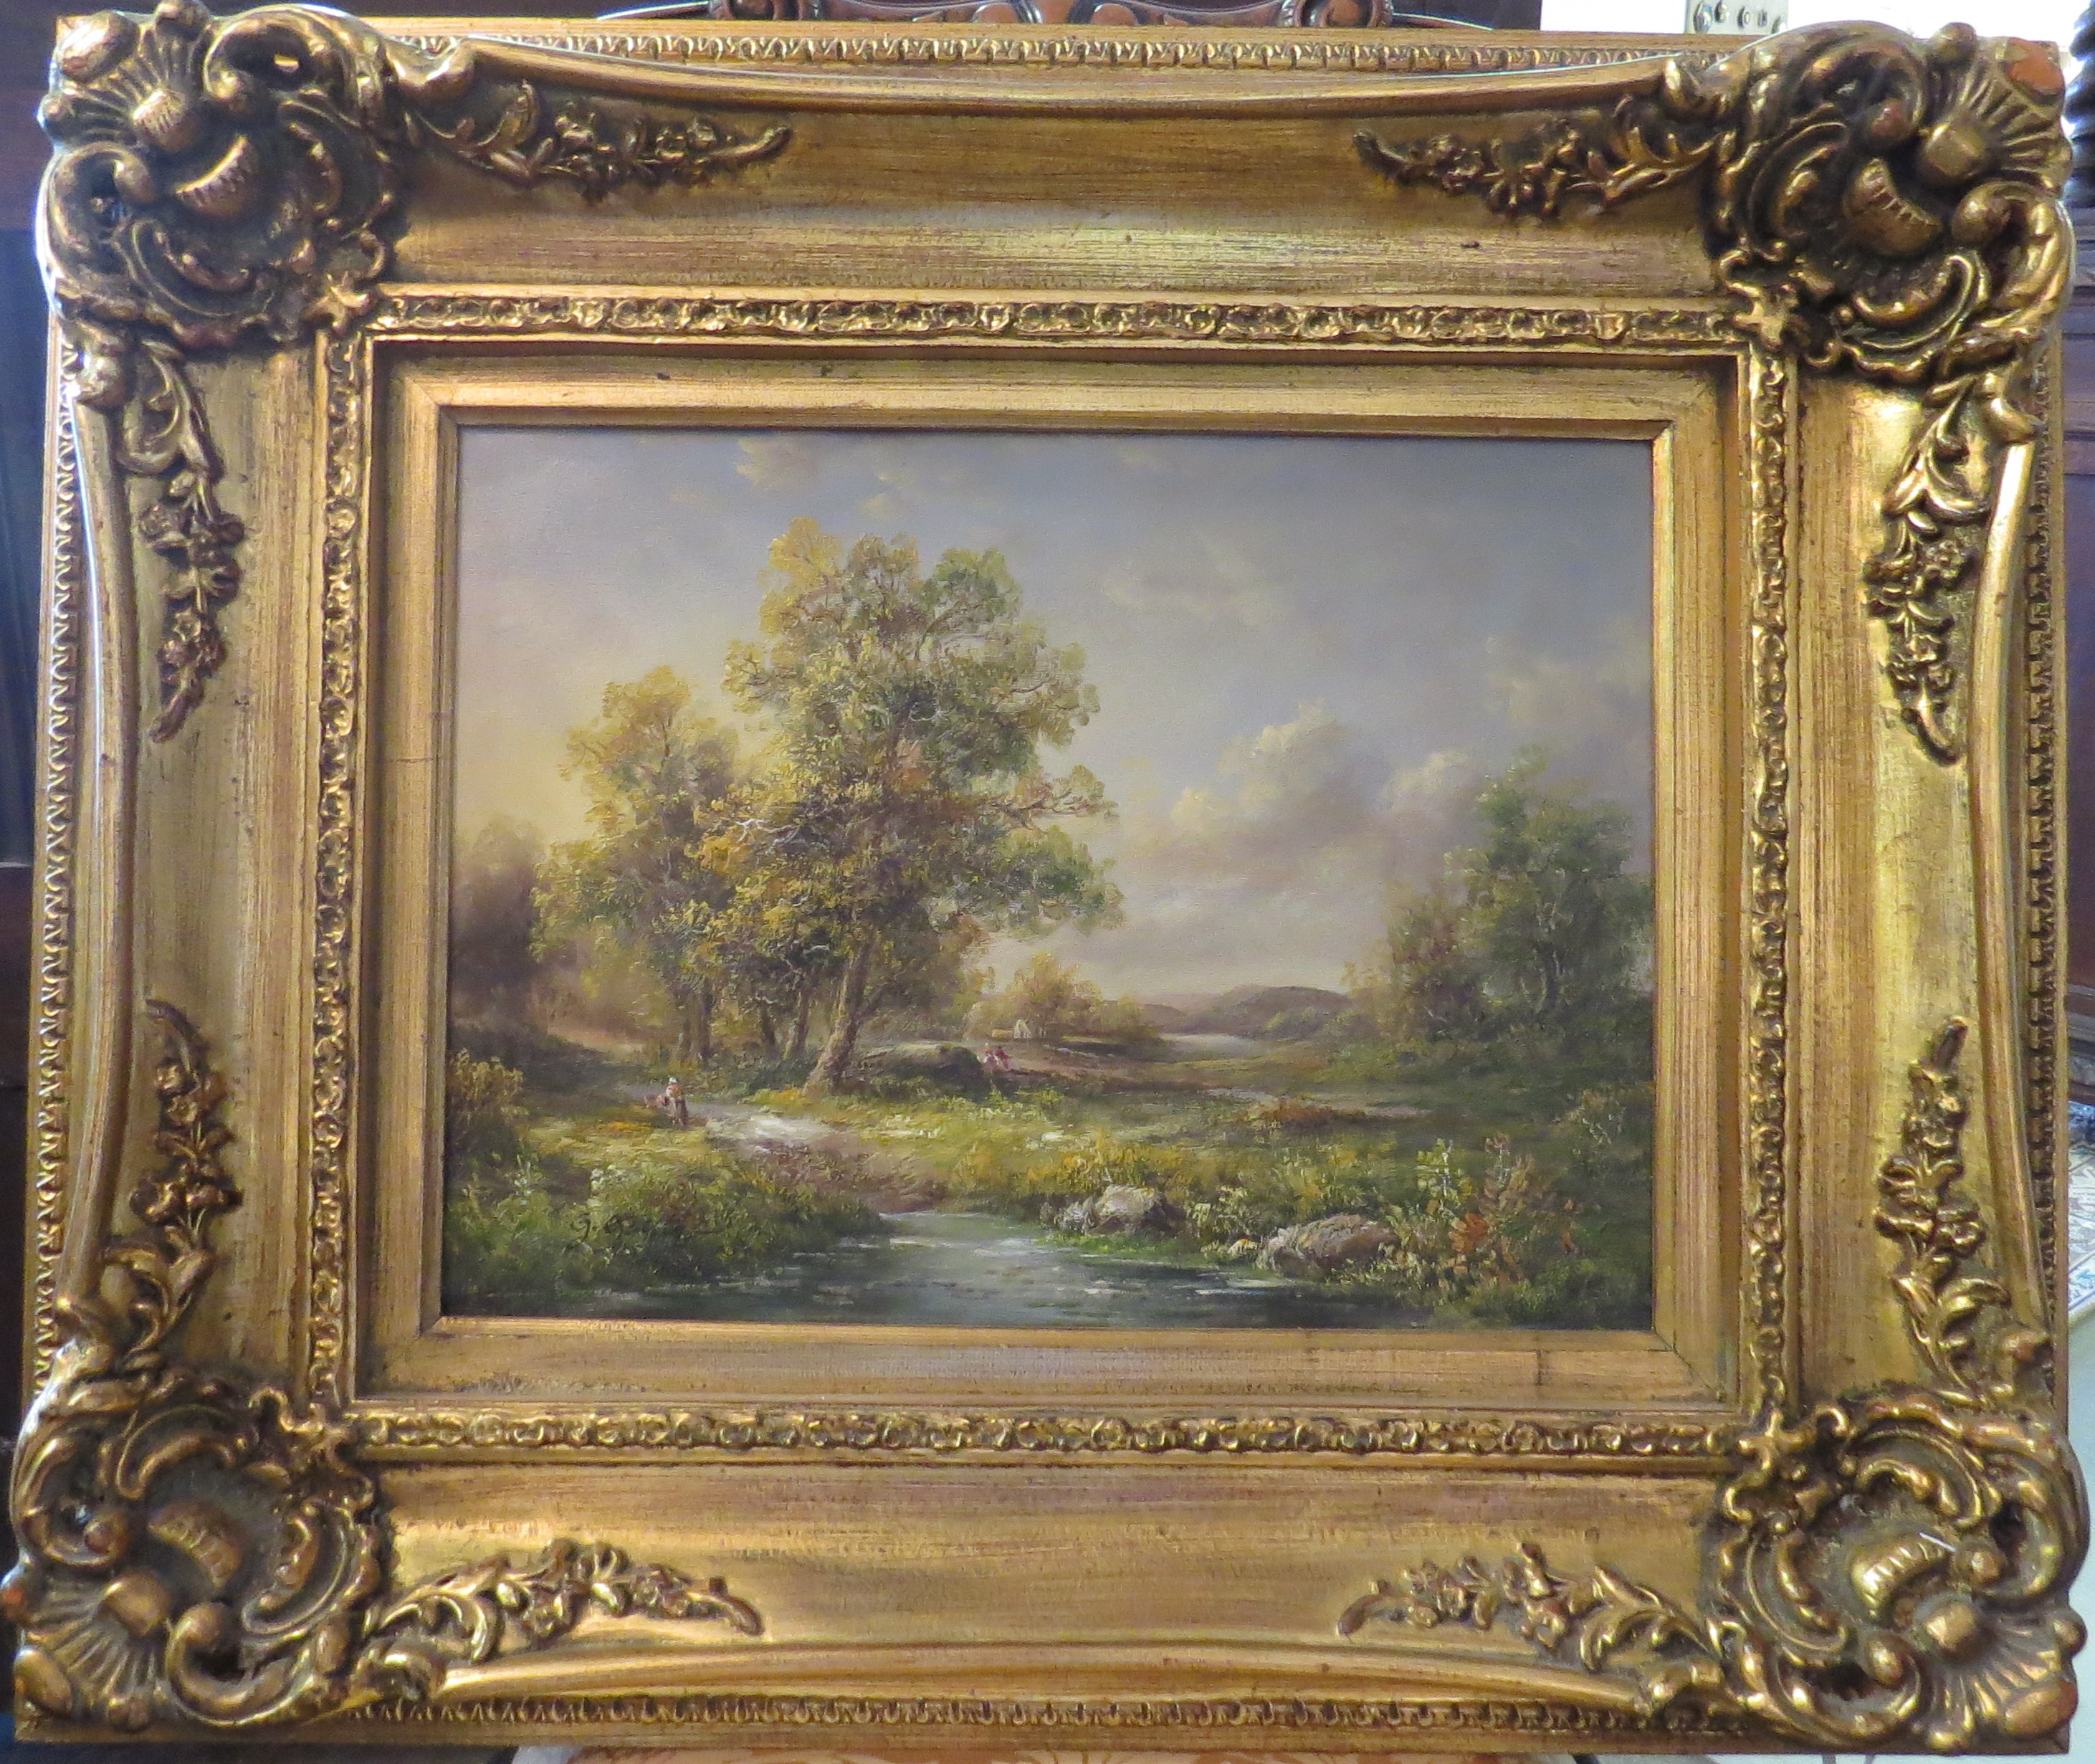 Oil on Canvas Depicting a Mountain Valley Farm Scene